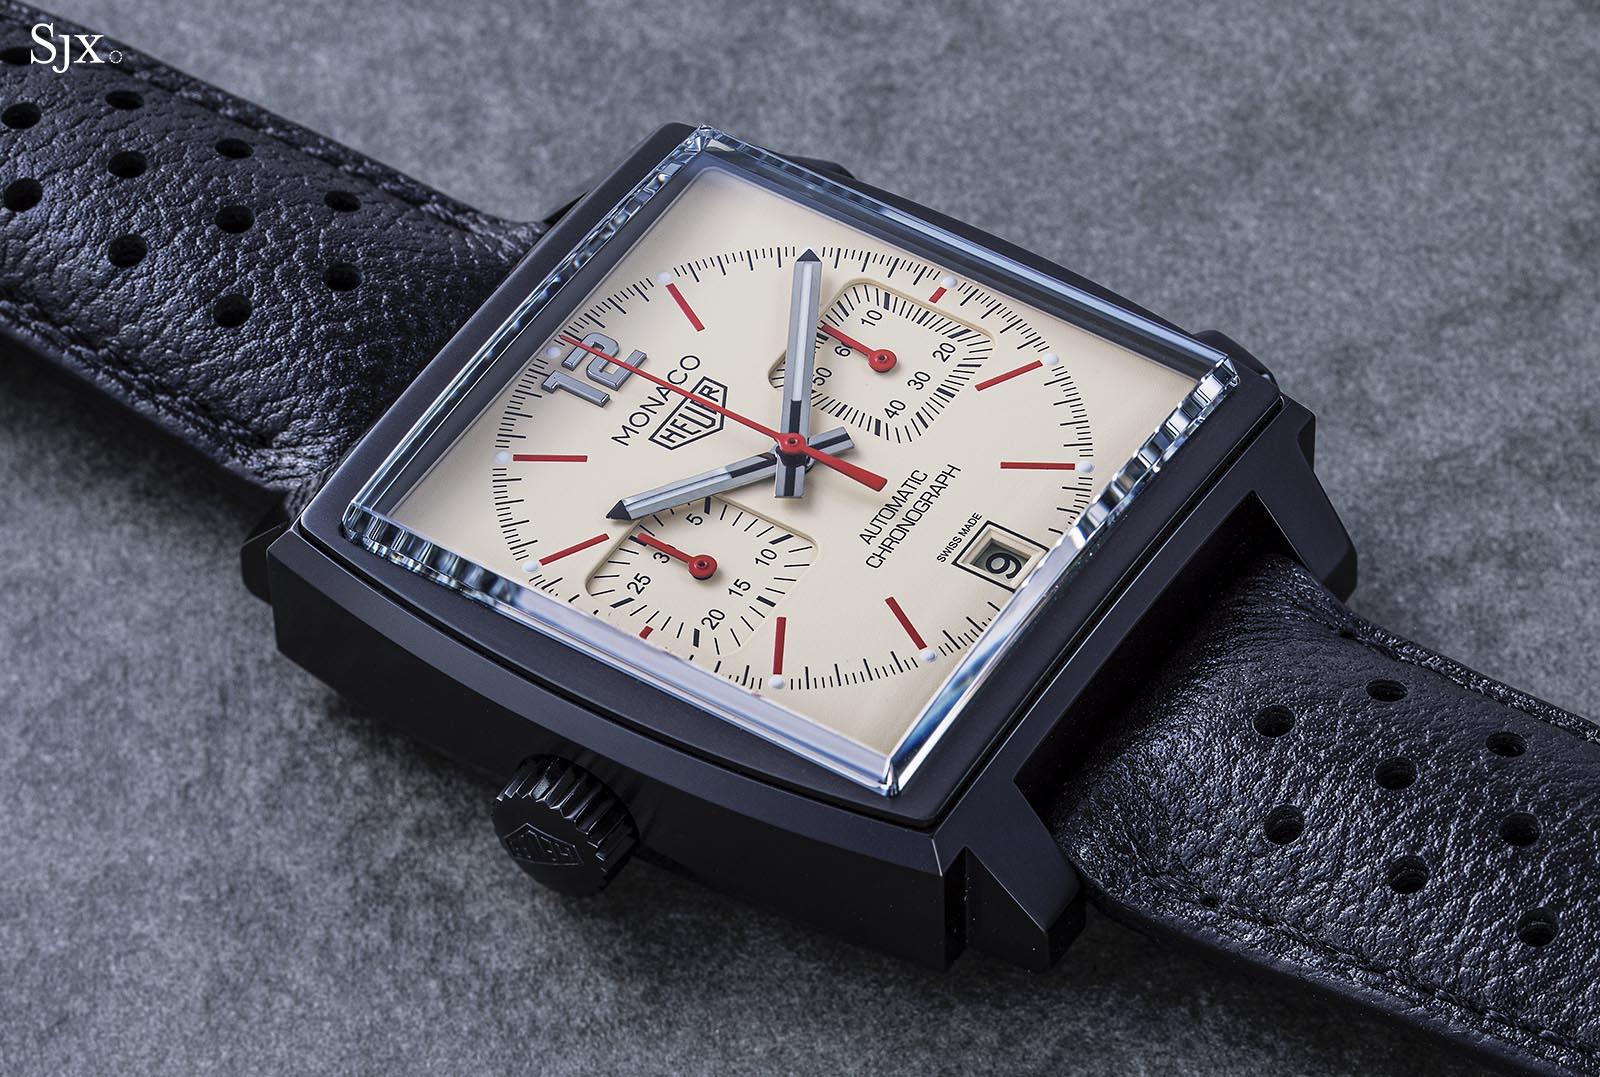 TAG Heuer Monaco The Hour Glass 3